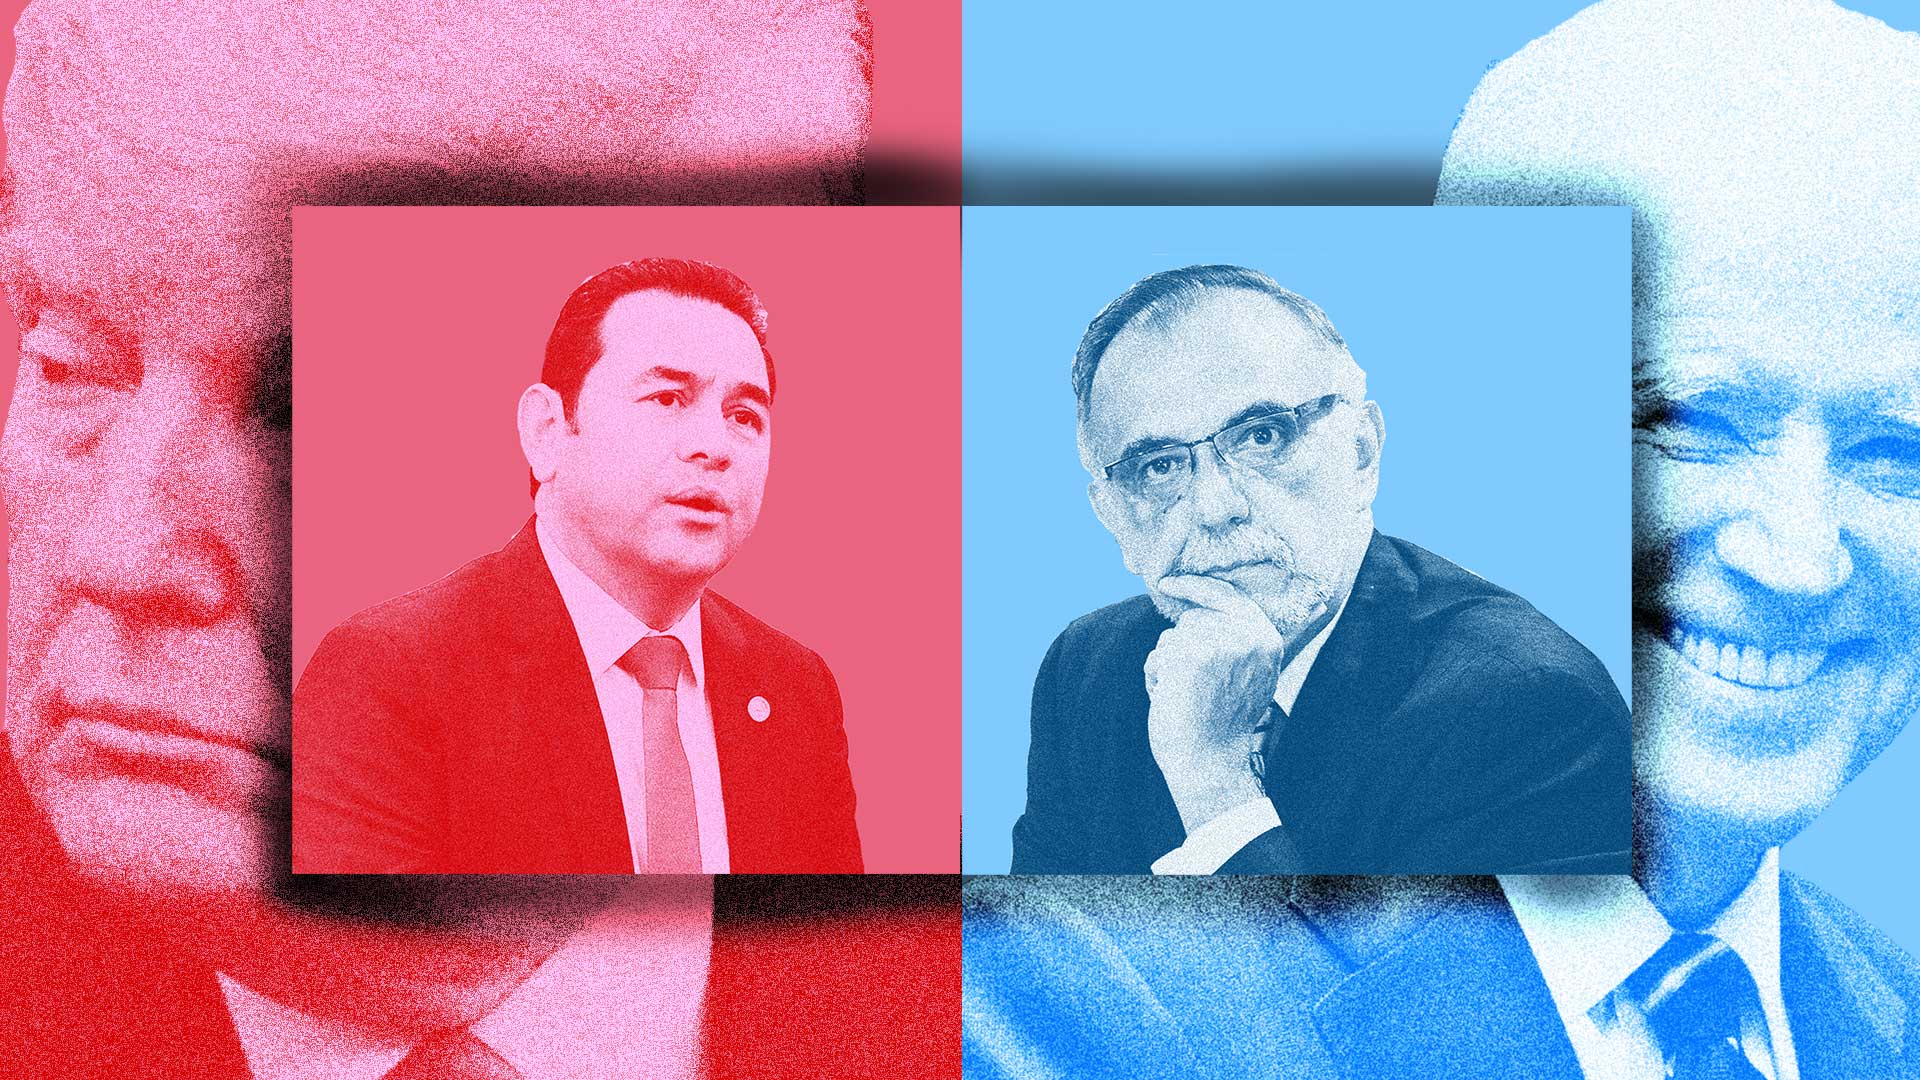 Photo illustration of a split image, with Jimmy Morales and Donald Trump in the background on the left side and Ivan Velasquez and Joe Biden on the right side. The left side has a red overlay and the right side has a blue overlay.